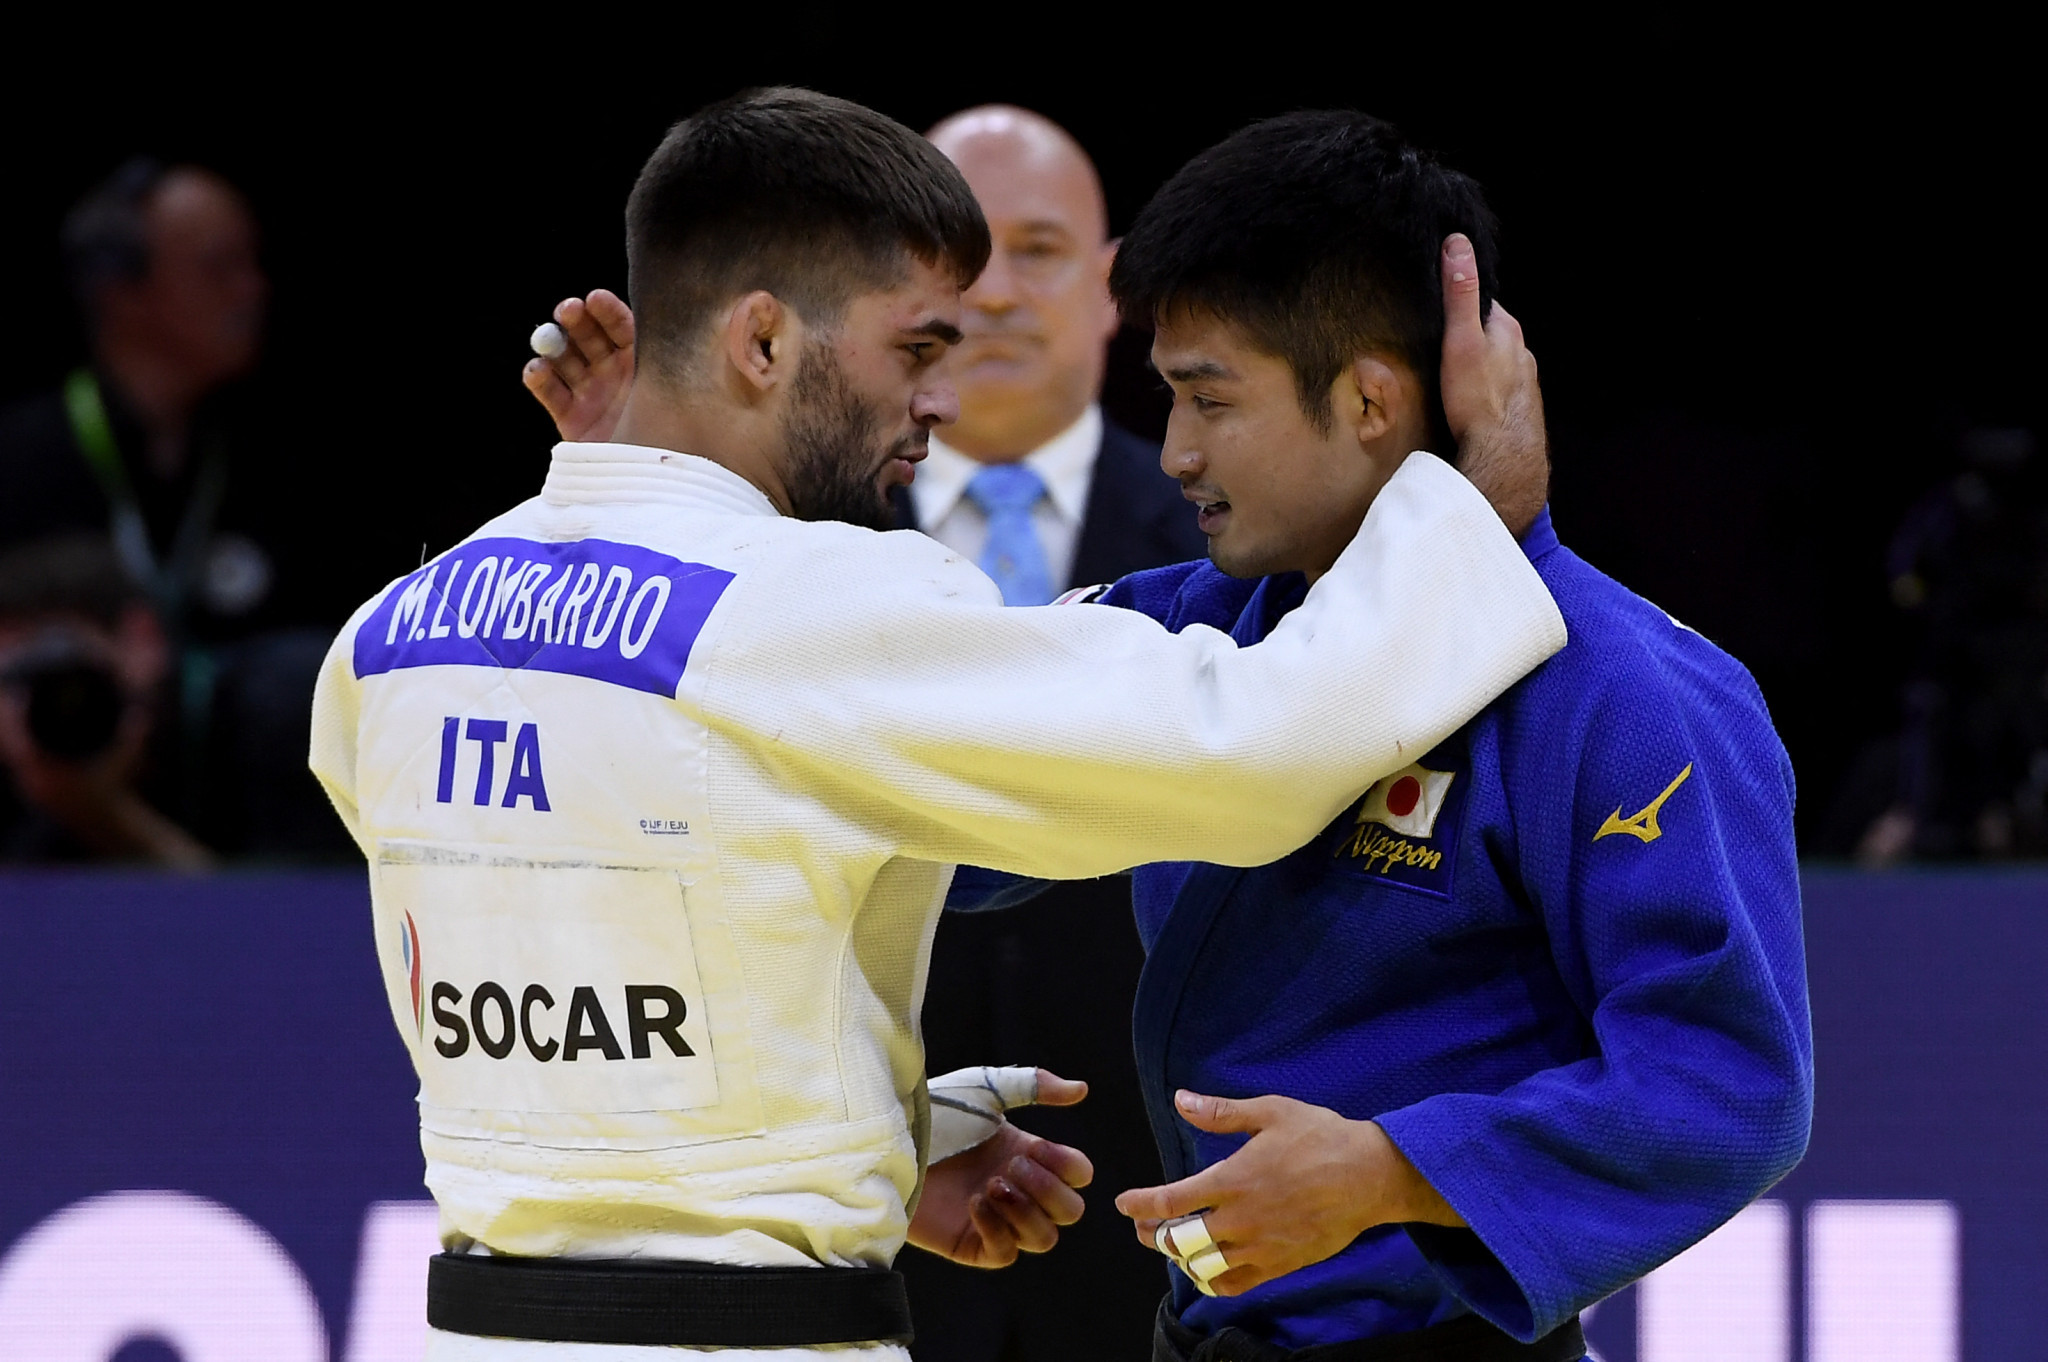 Manuel Lombardo congratulates Joshiro Maruyama for successfully defending the men's under-66kg crown ©Getty Images